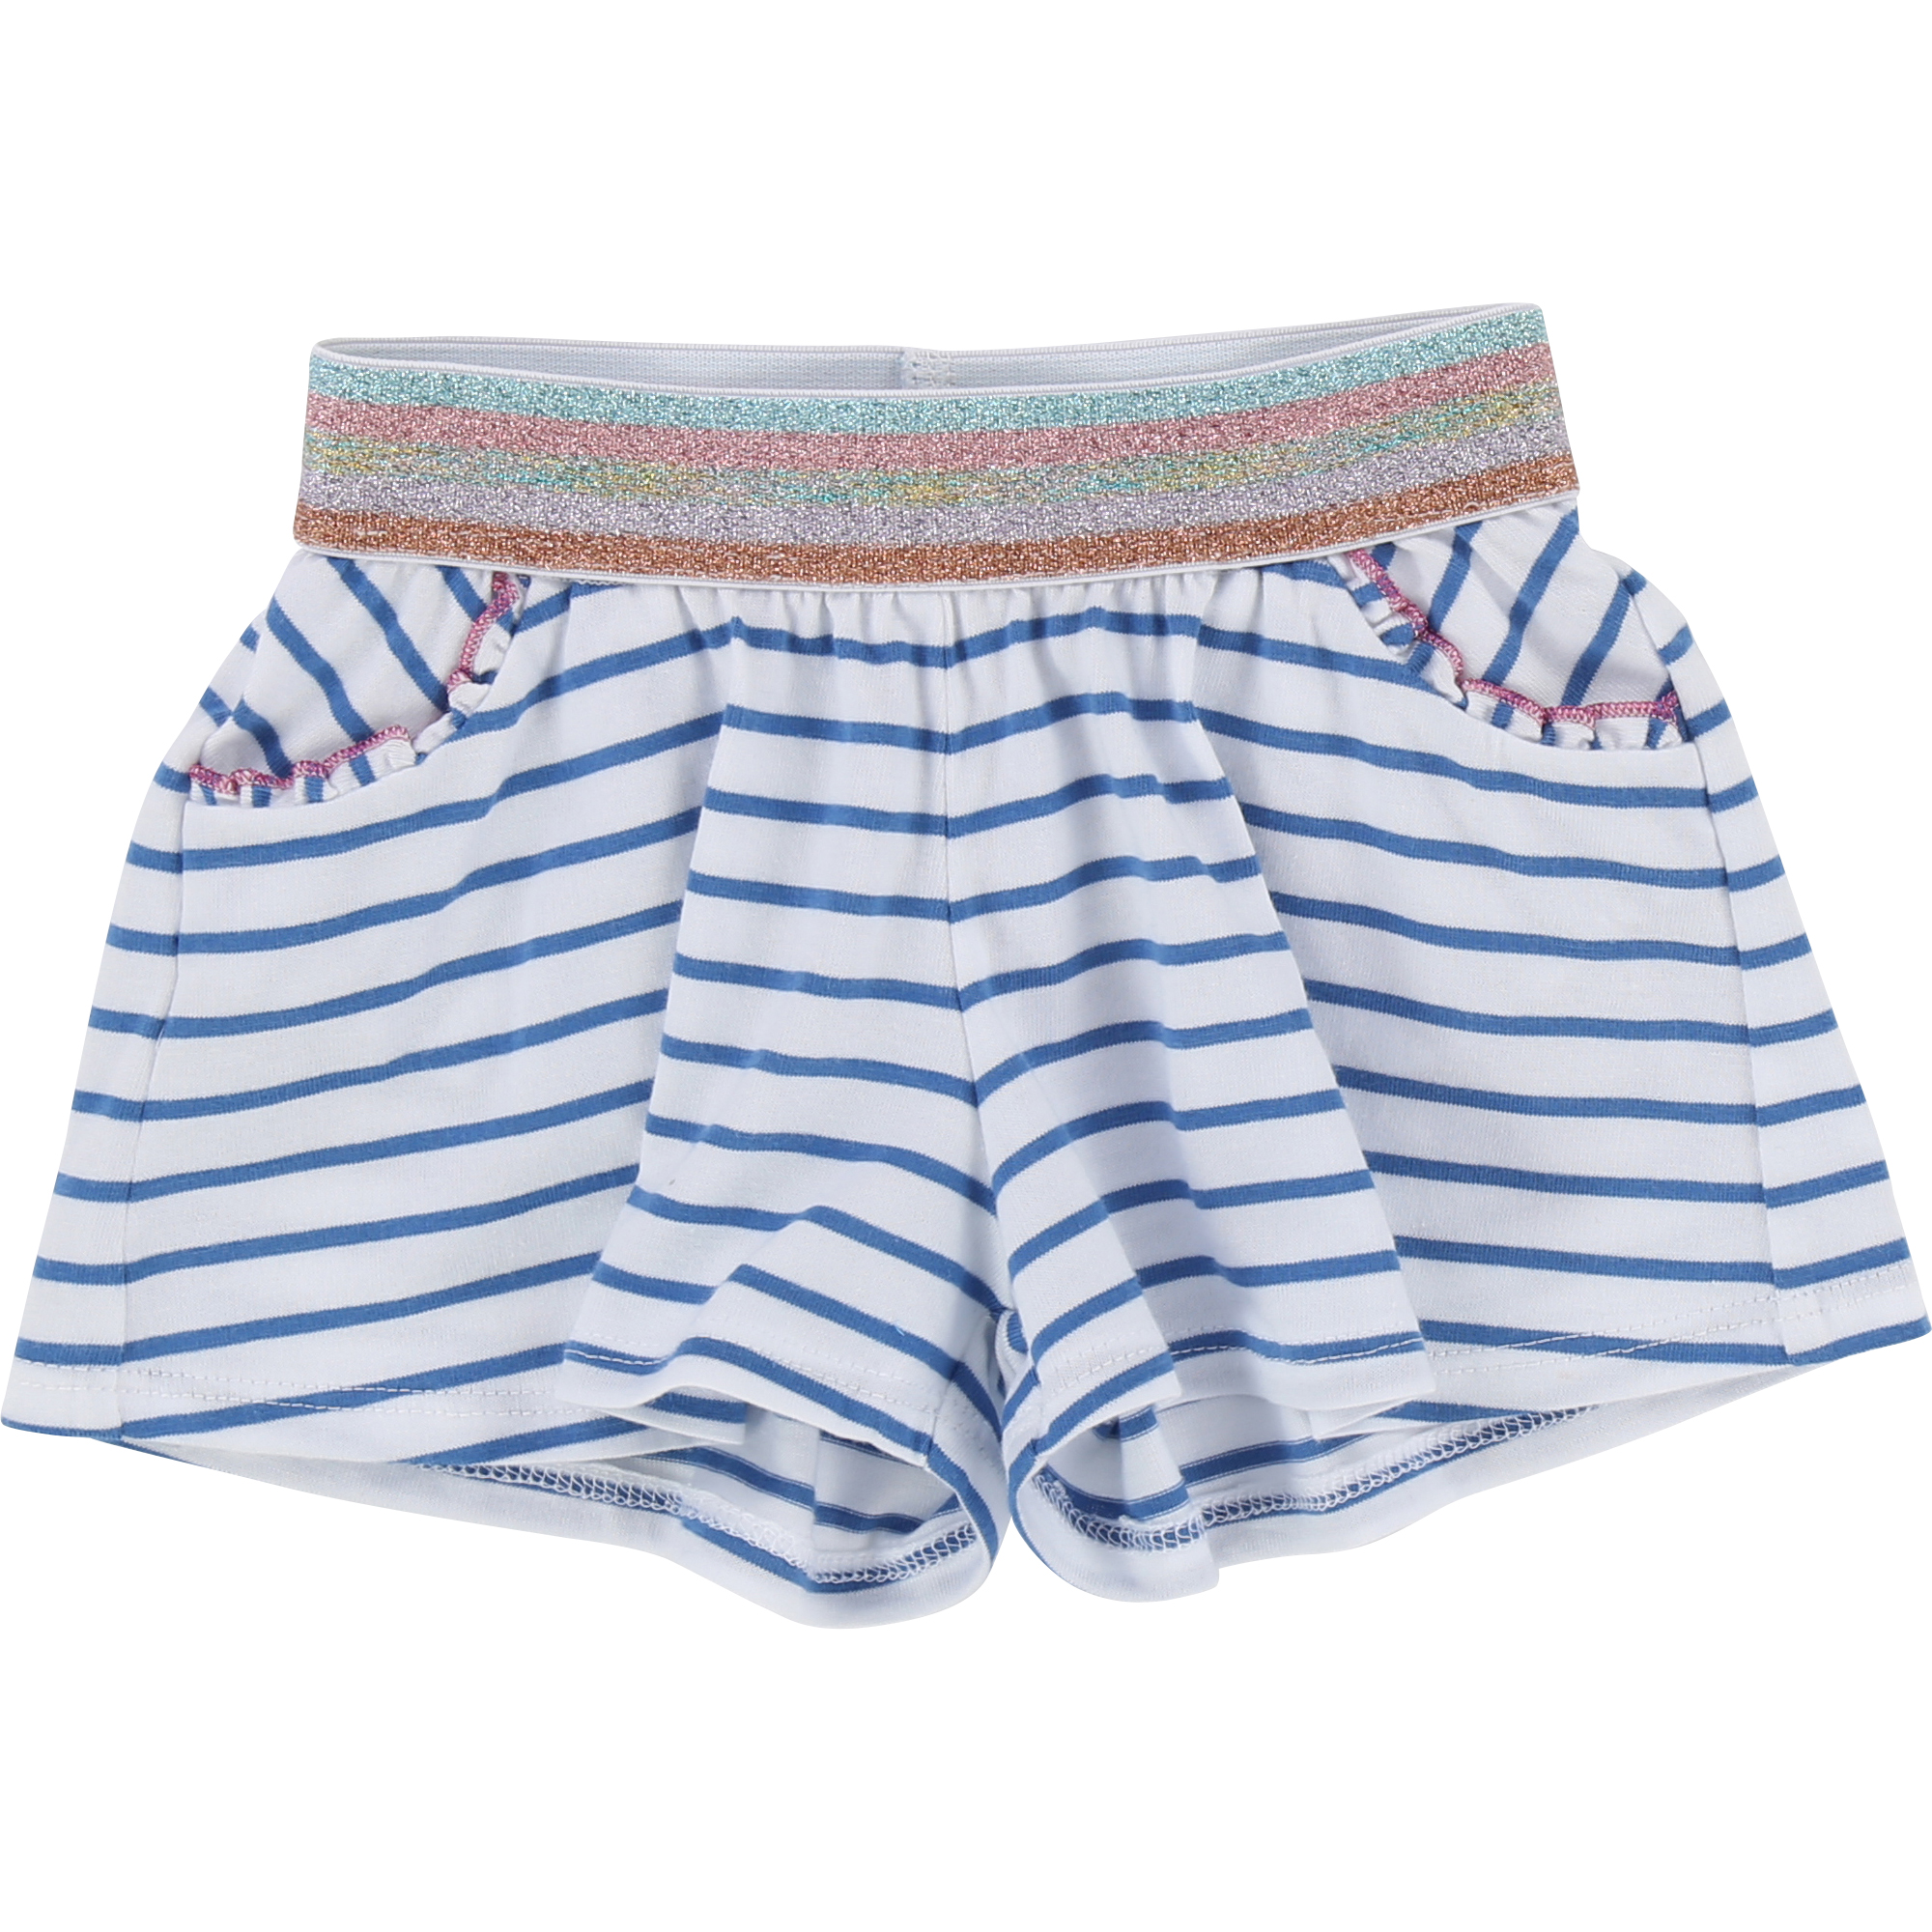 SHORT THE MARC JACOBS Per BAMBINA